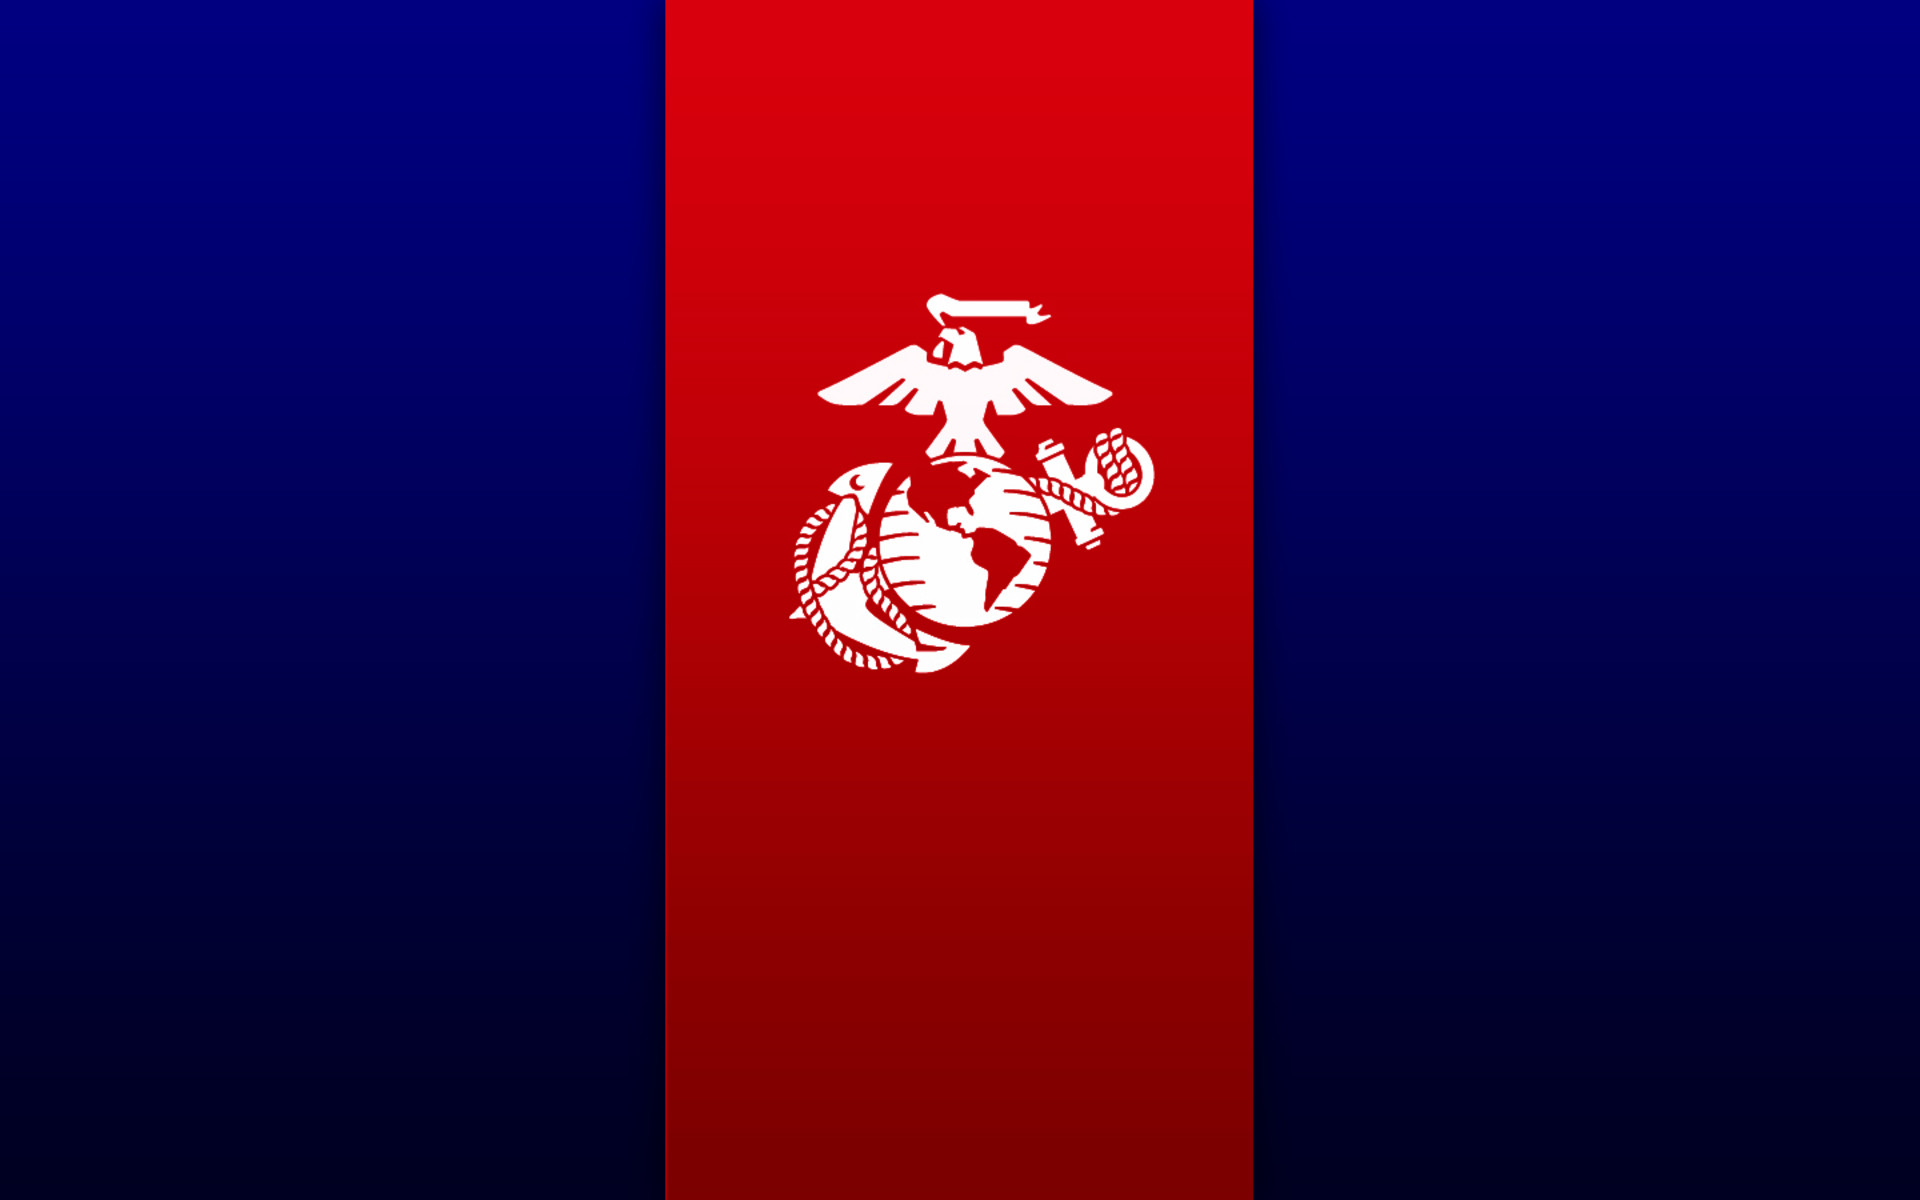 1920x1200 US Navy Logo Wallpapers Group 1920A 1080